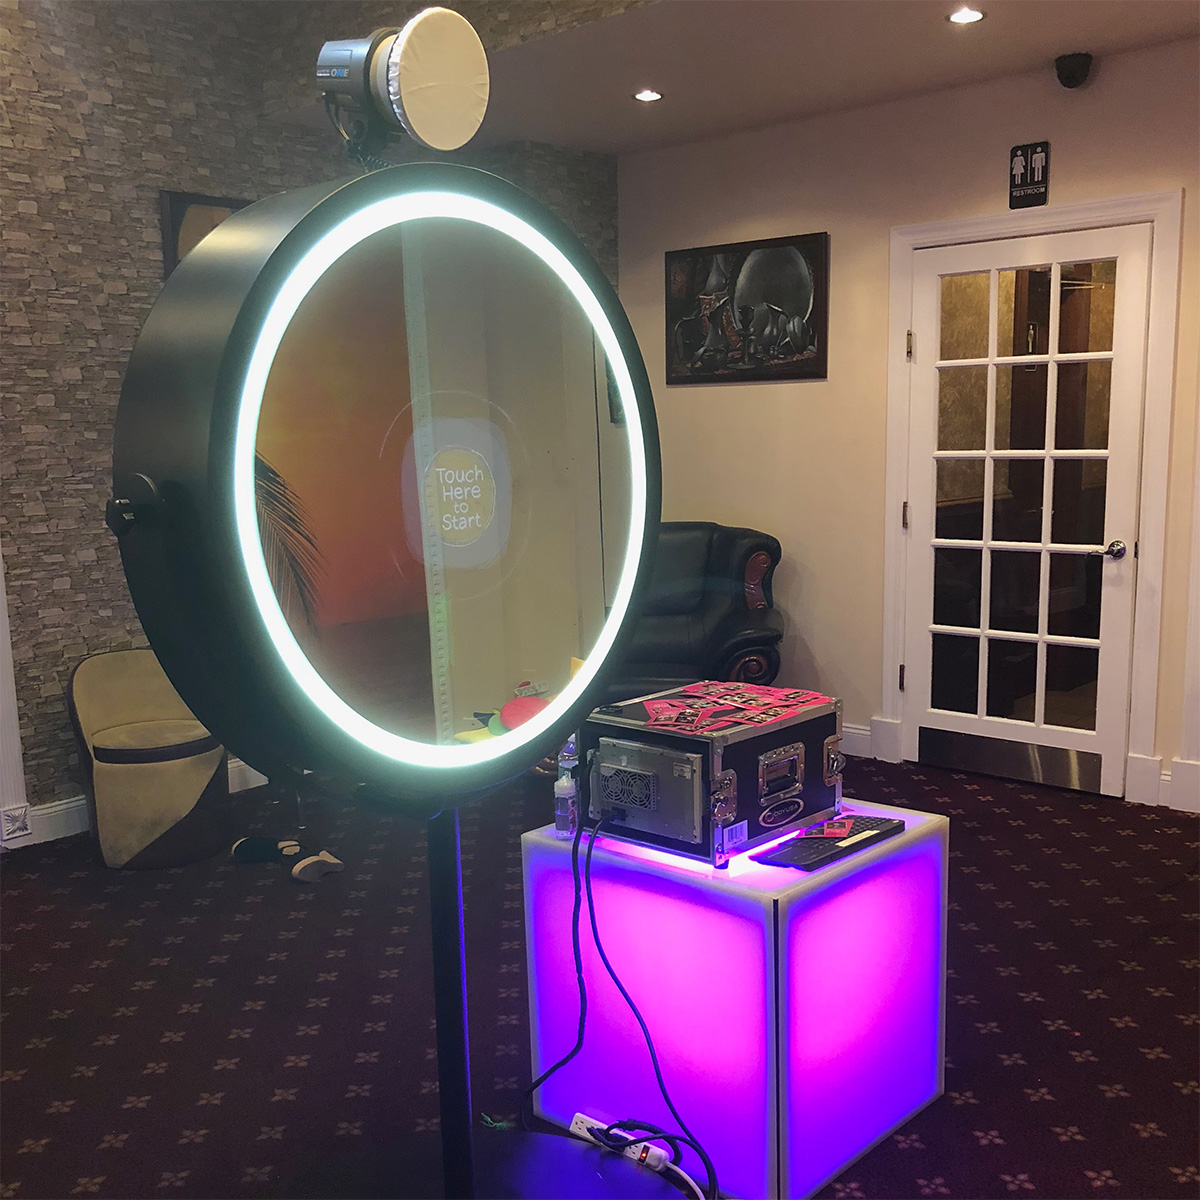 Beauty Mirror Photo Booth Rental | 212 PHOTO BOOTH